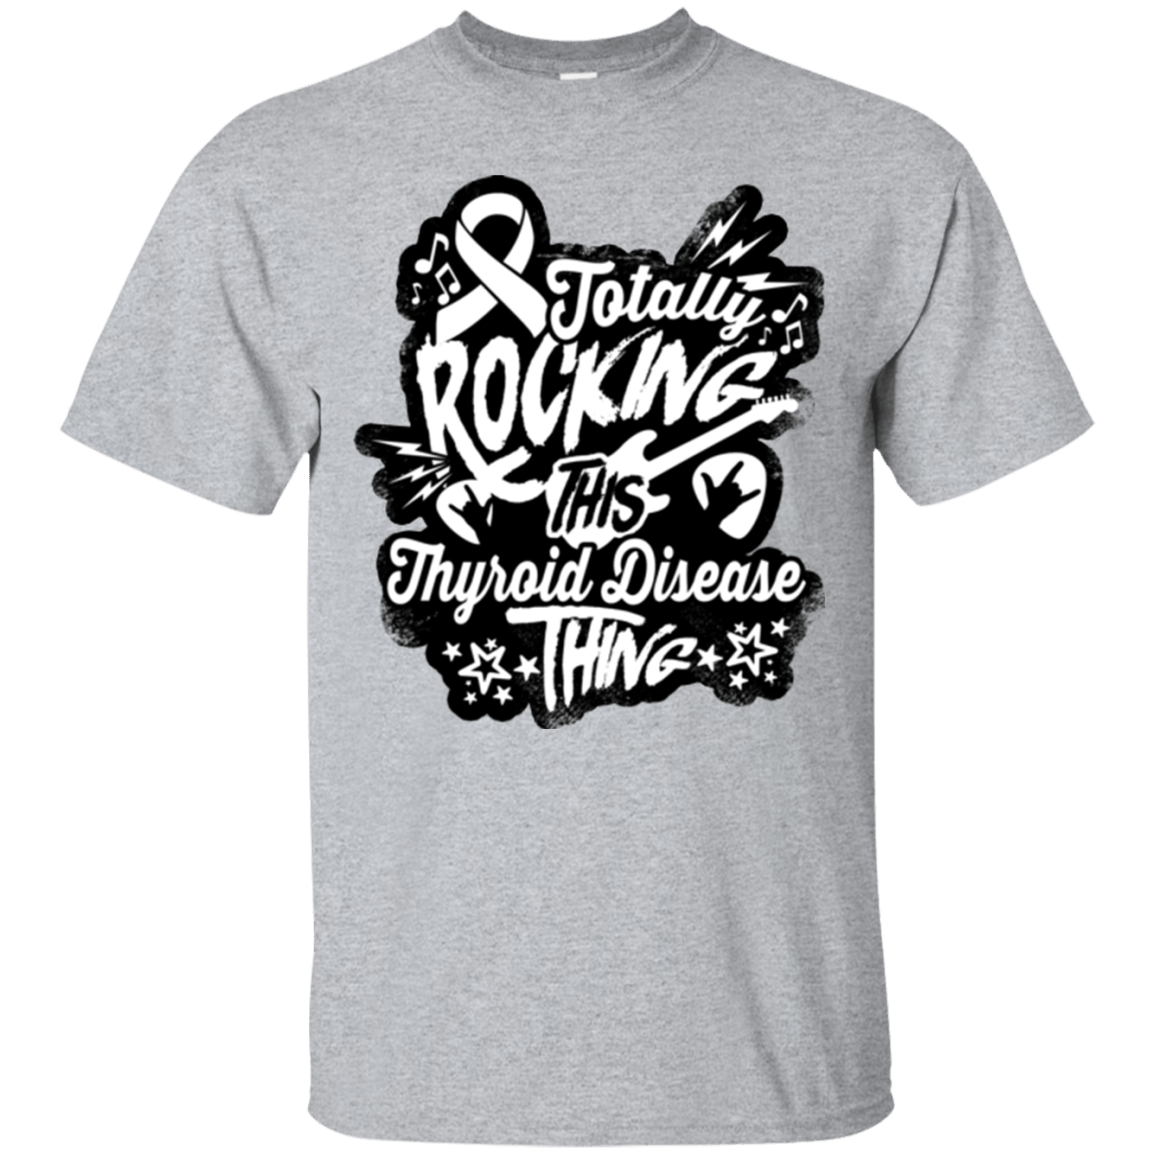 T-Shirts - Rocking Thyroid Disease Unisex Shirt